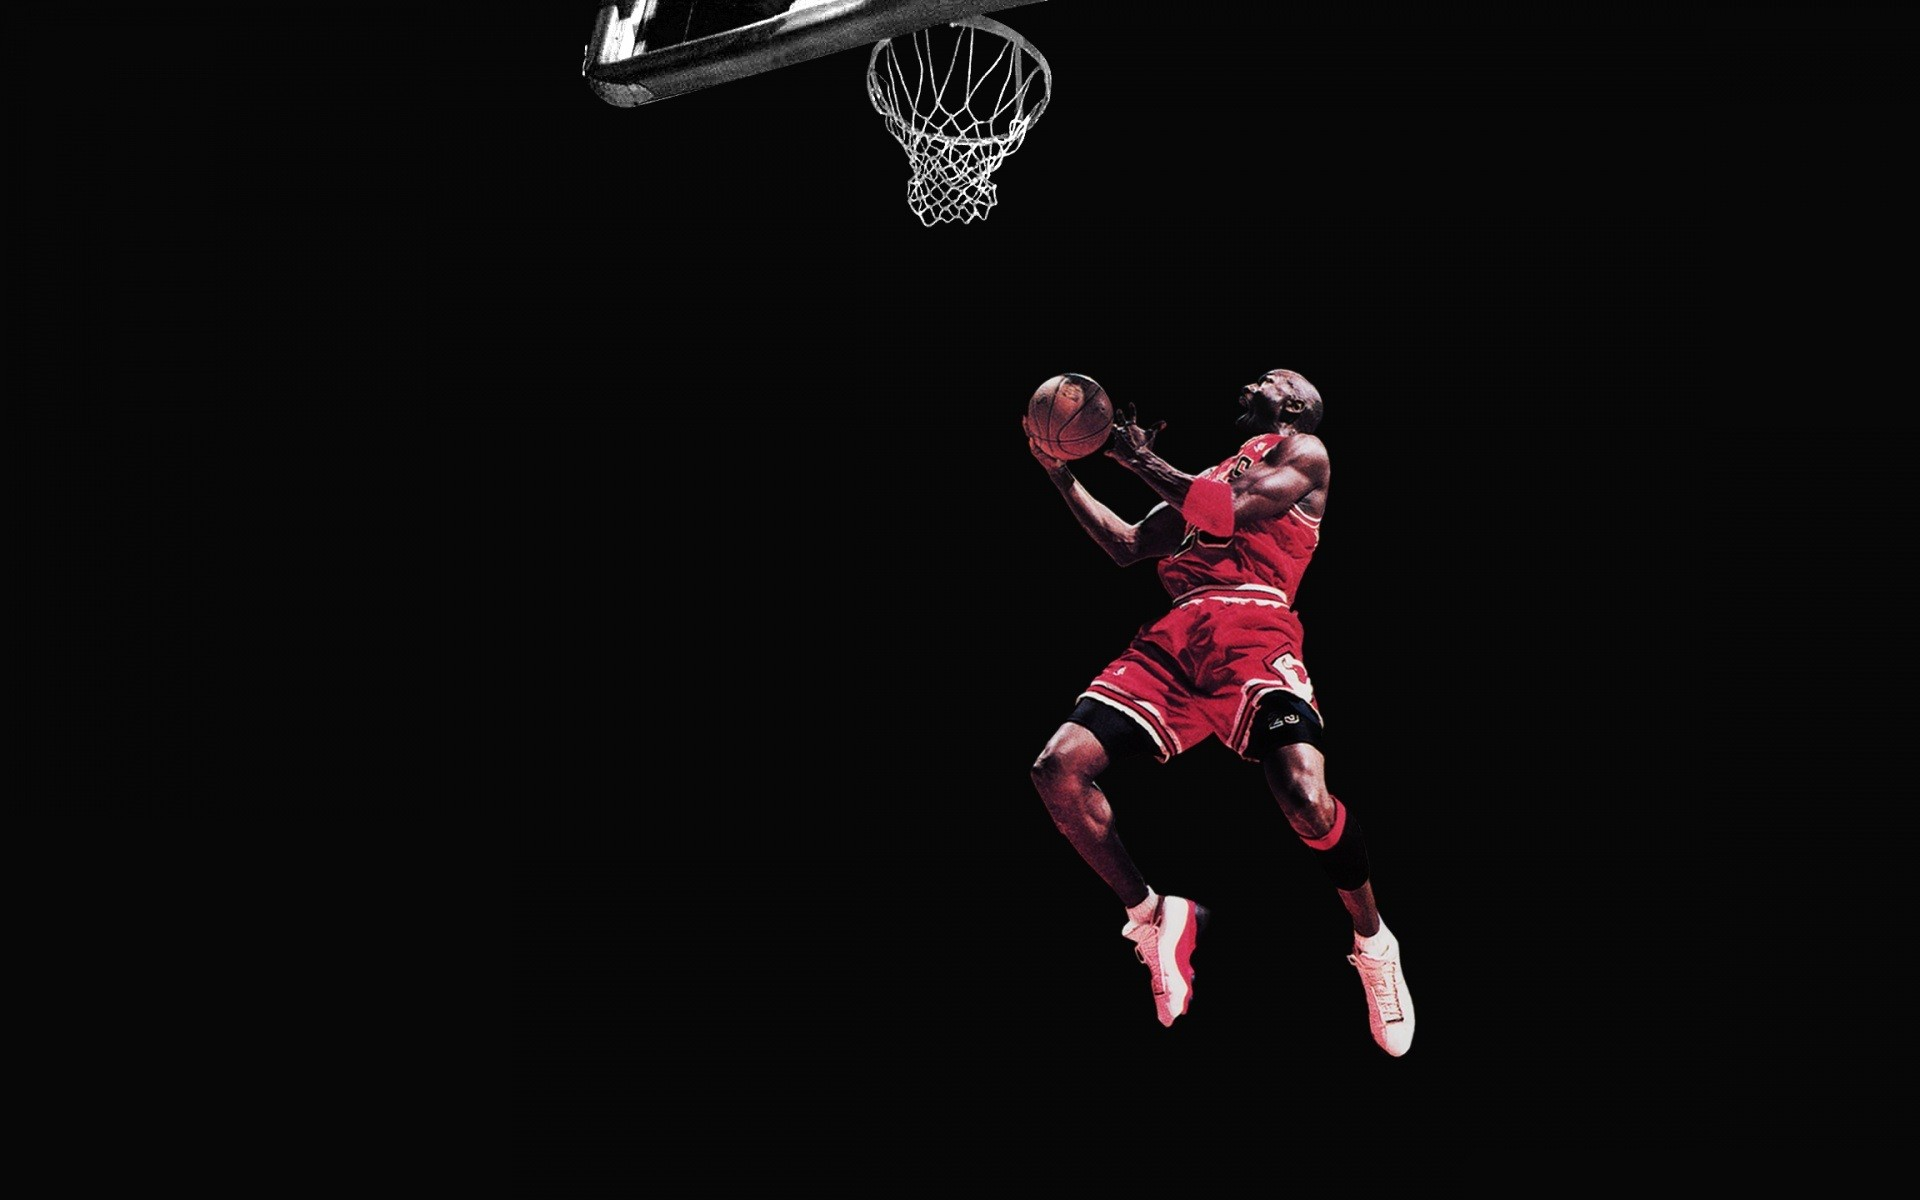 11 michael jordan wallpaper 1920 x 1200 Wallpaper Widescreen 1920x1200